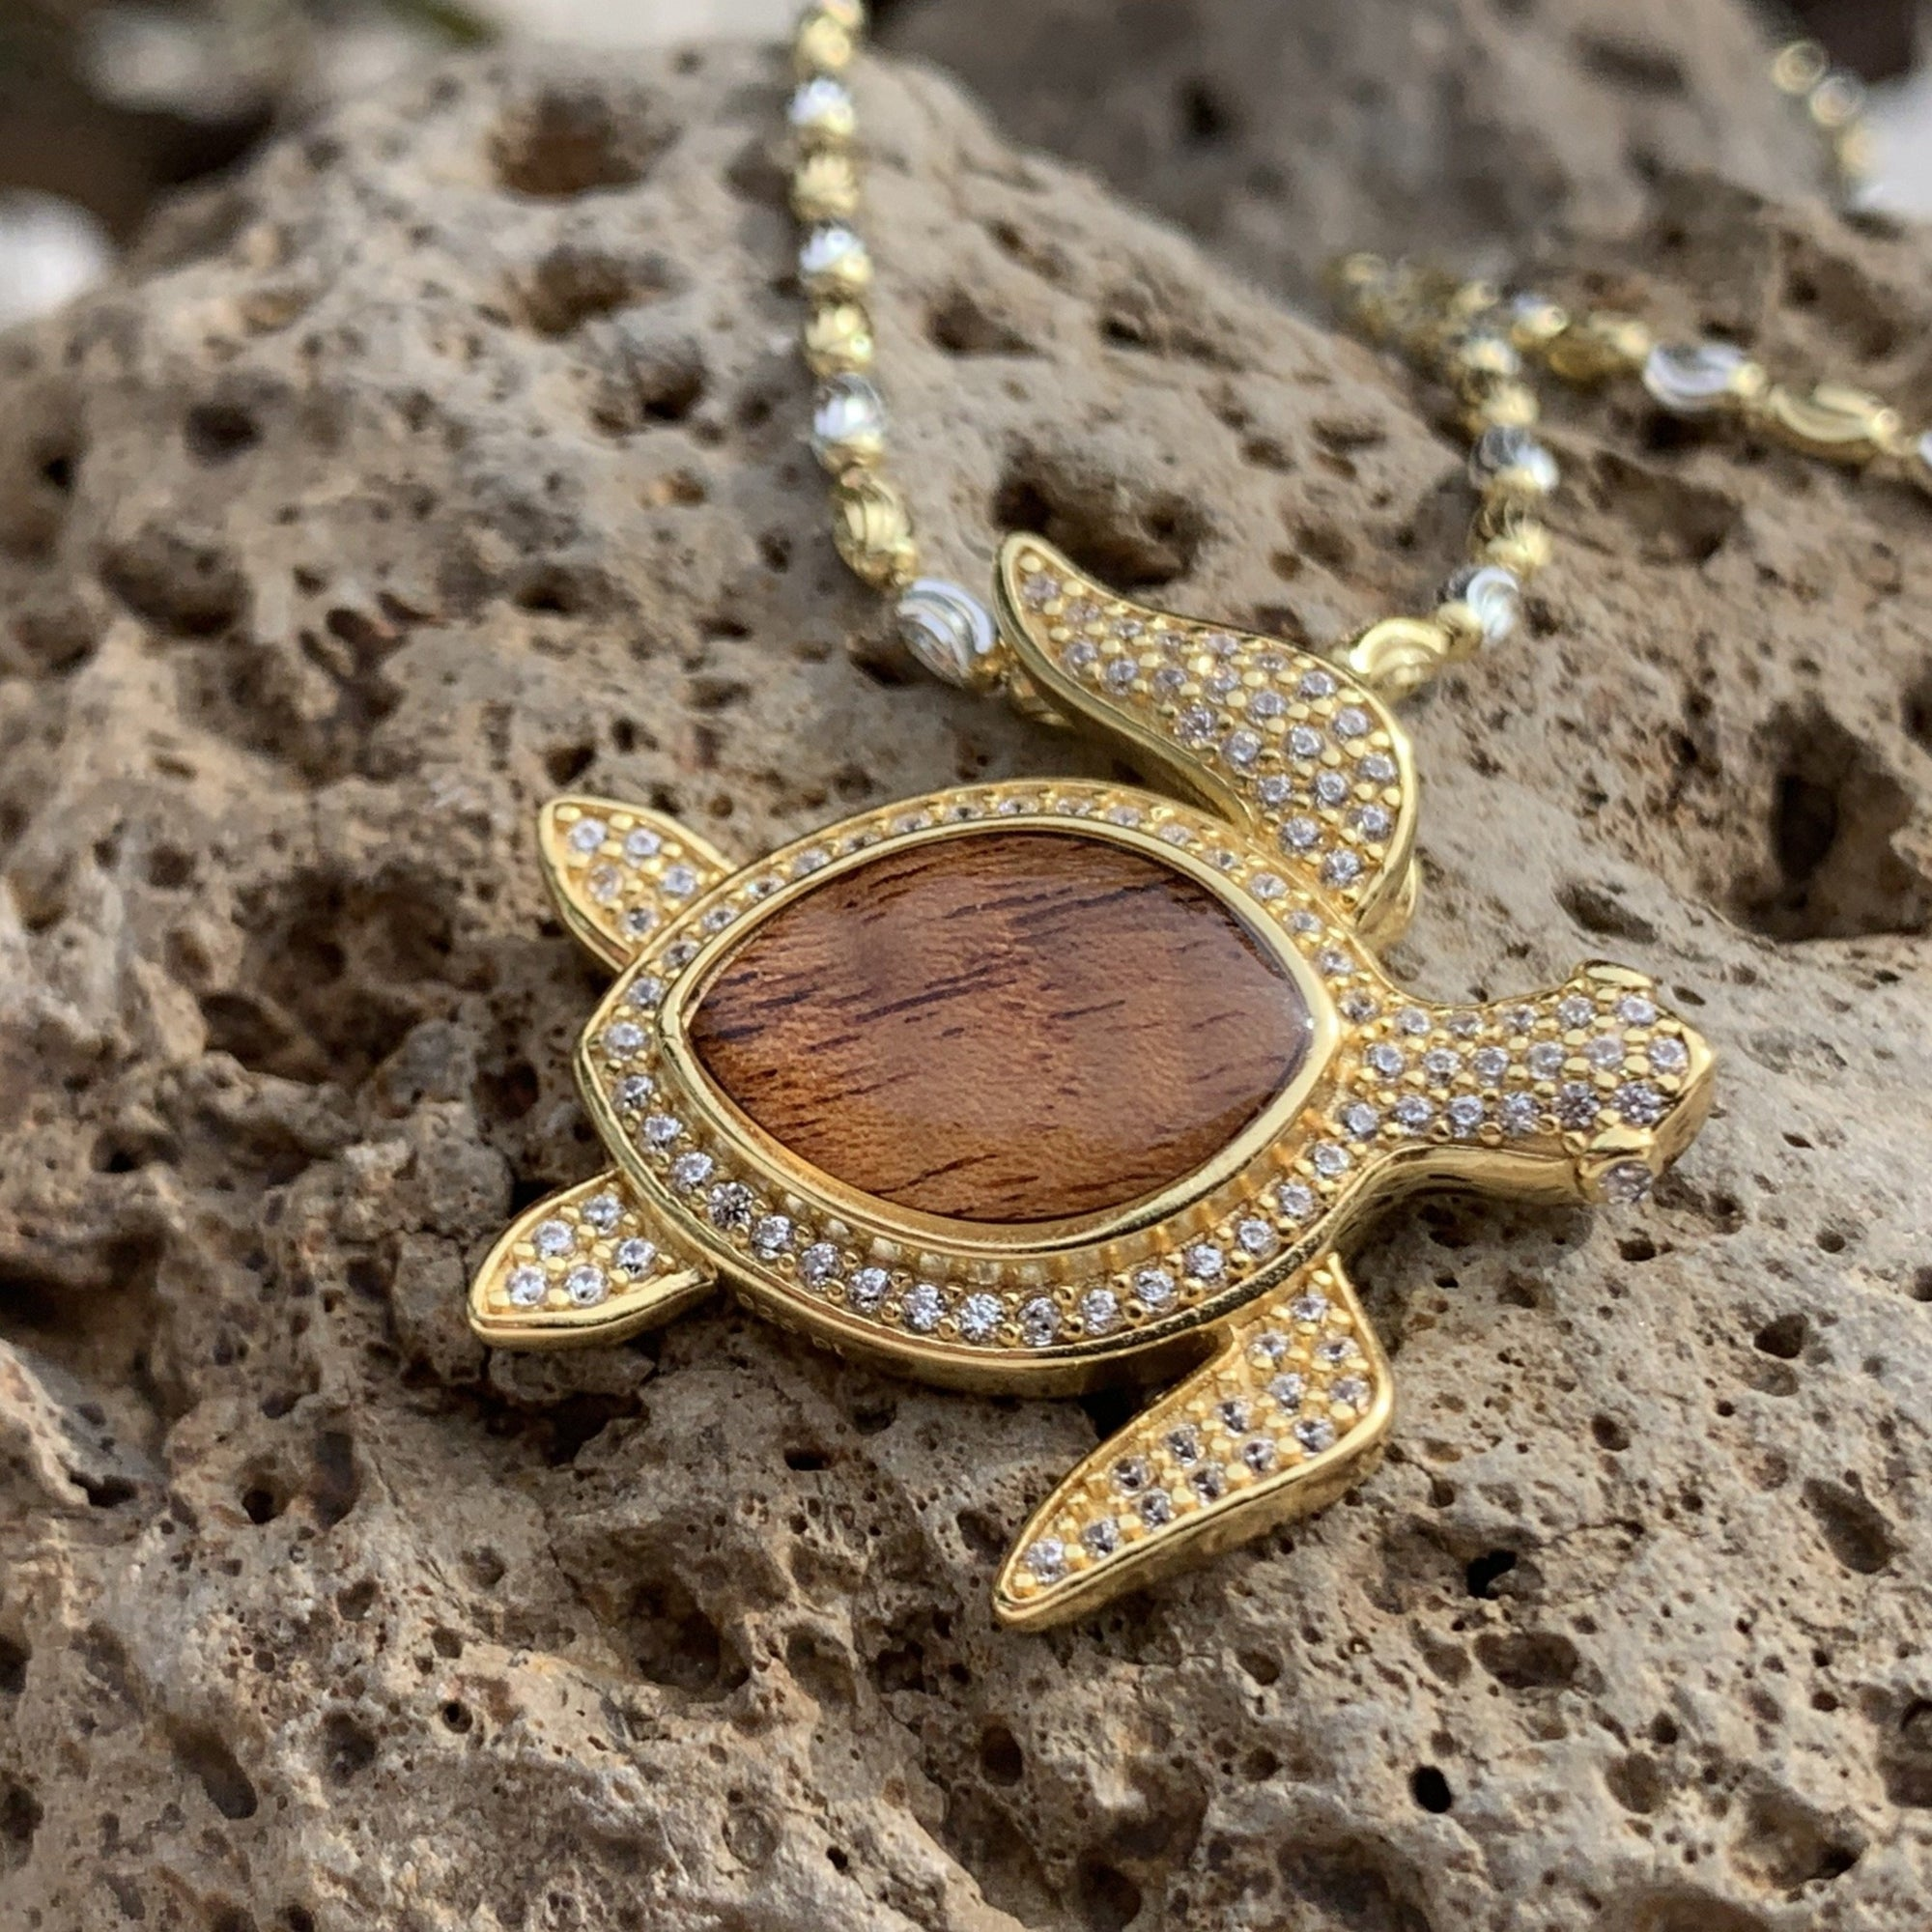 Koa cubic zirconia pave turtle in 14K gold plating over sterling silver.